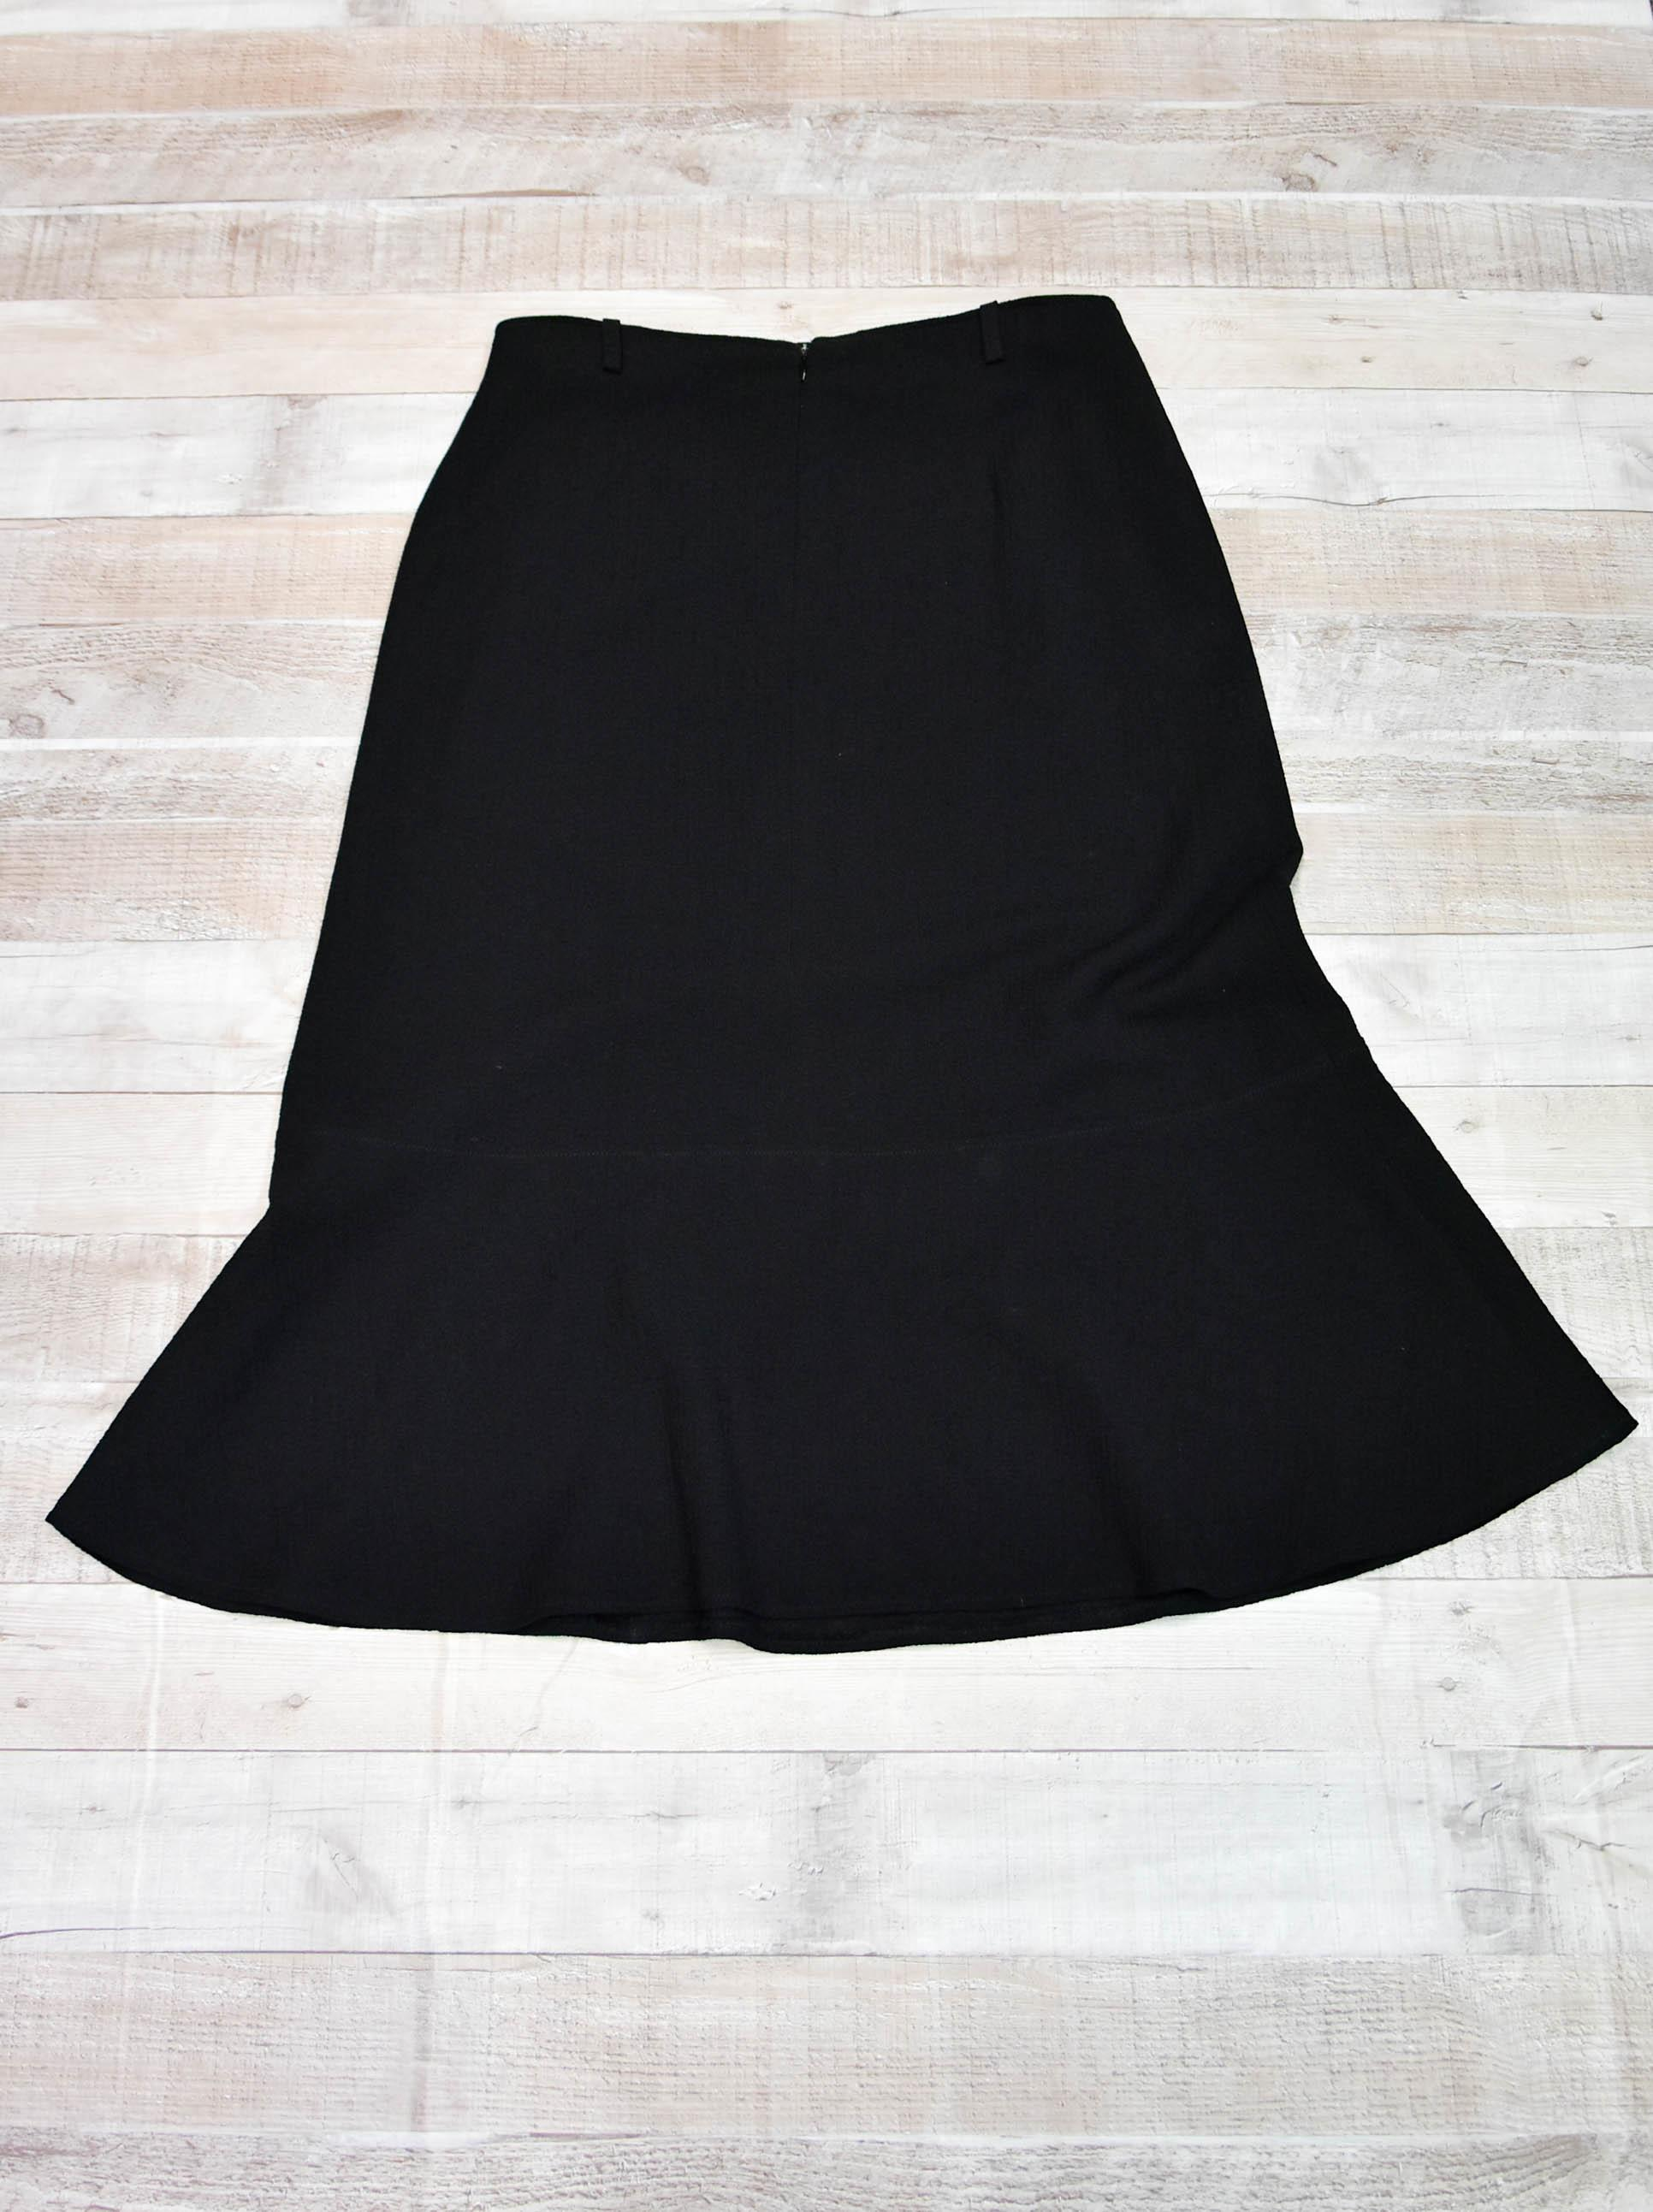 Catherine Hepfer Black Wool A Line Skirt Size 1427-01-2021 at 10.01.21 2